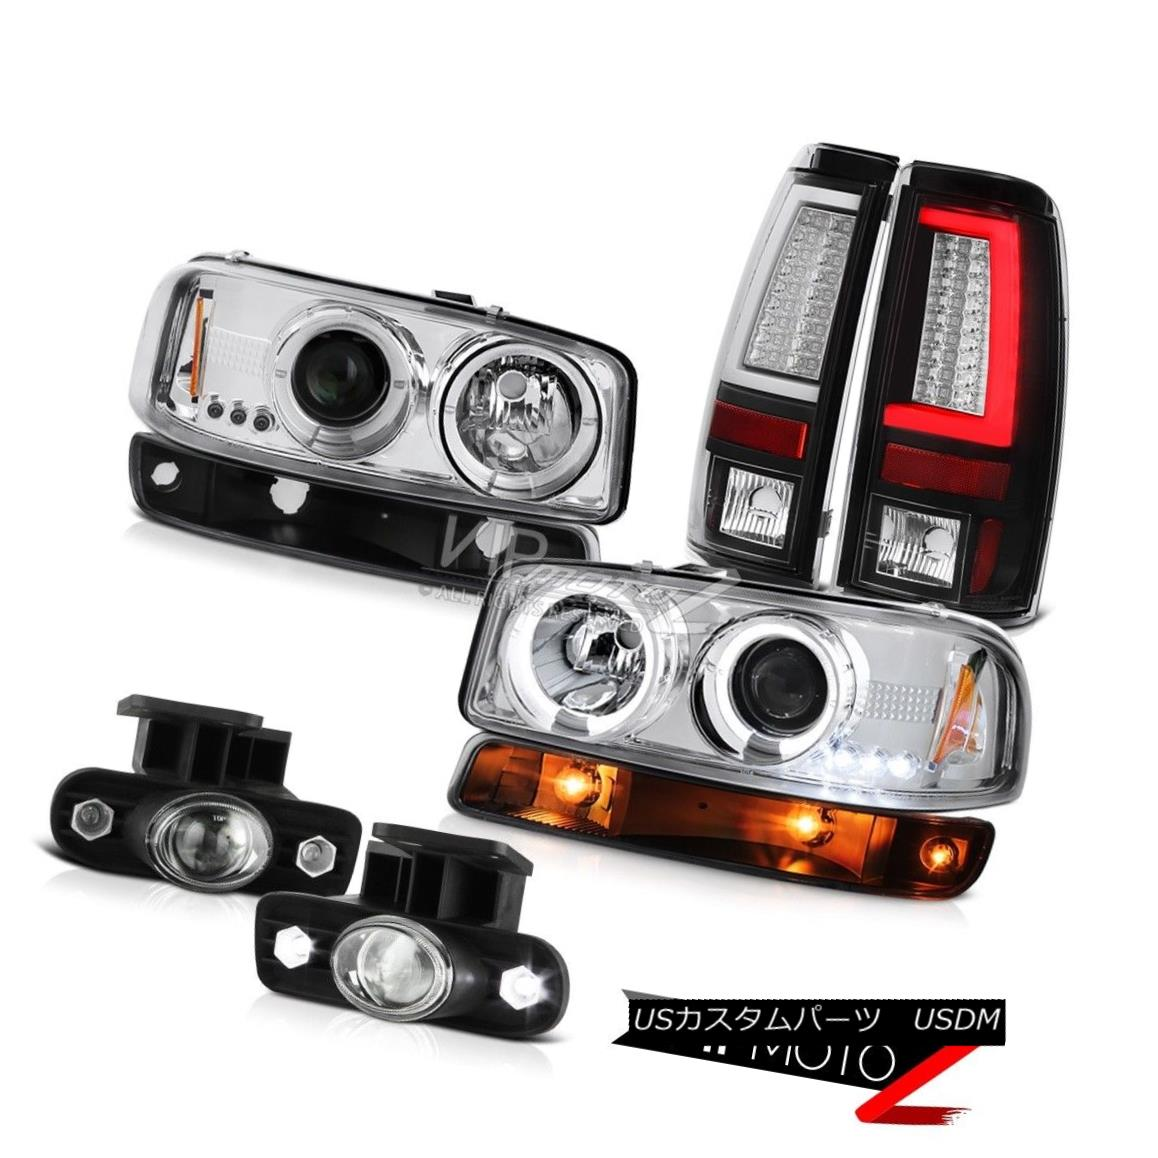 ヘッドライト 99-02 GMC Sierra Tail Lights Parking Light Fog Headlights OLED Prism